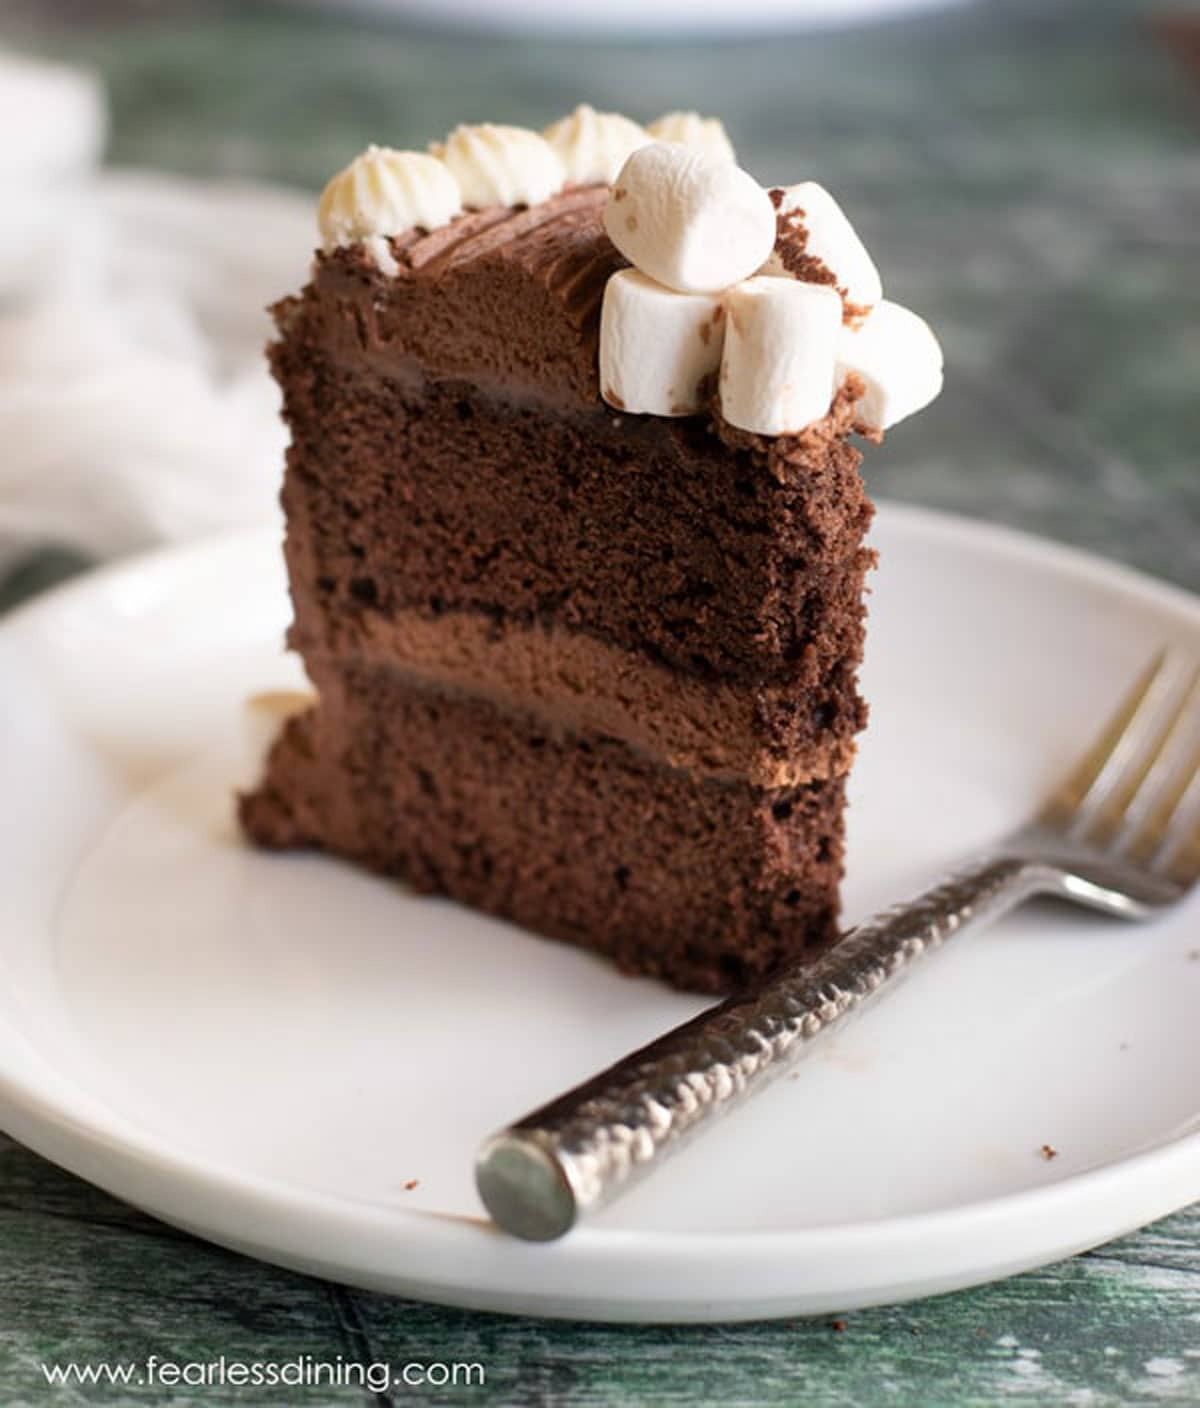 a slice of chocolate cake standing up tall on a plate